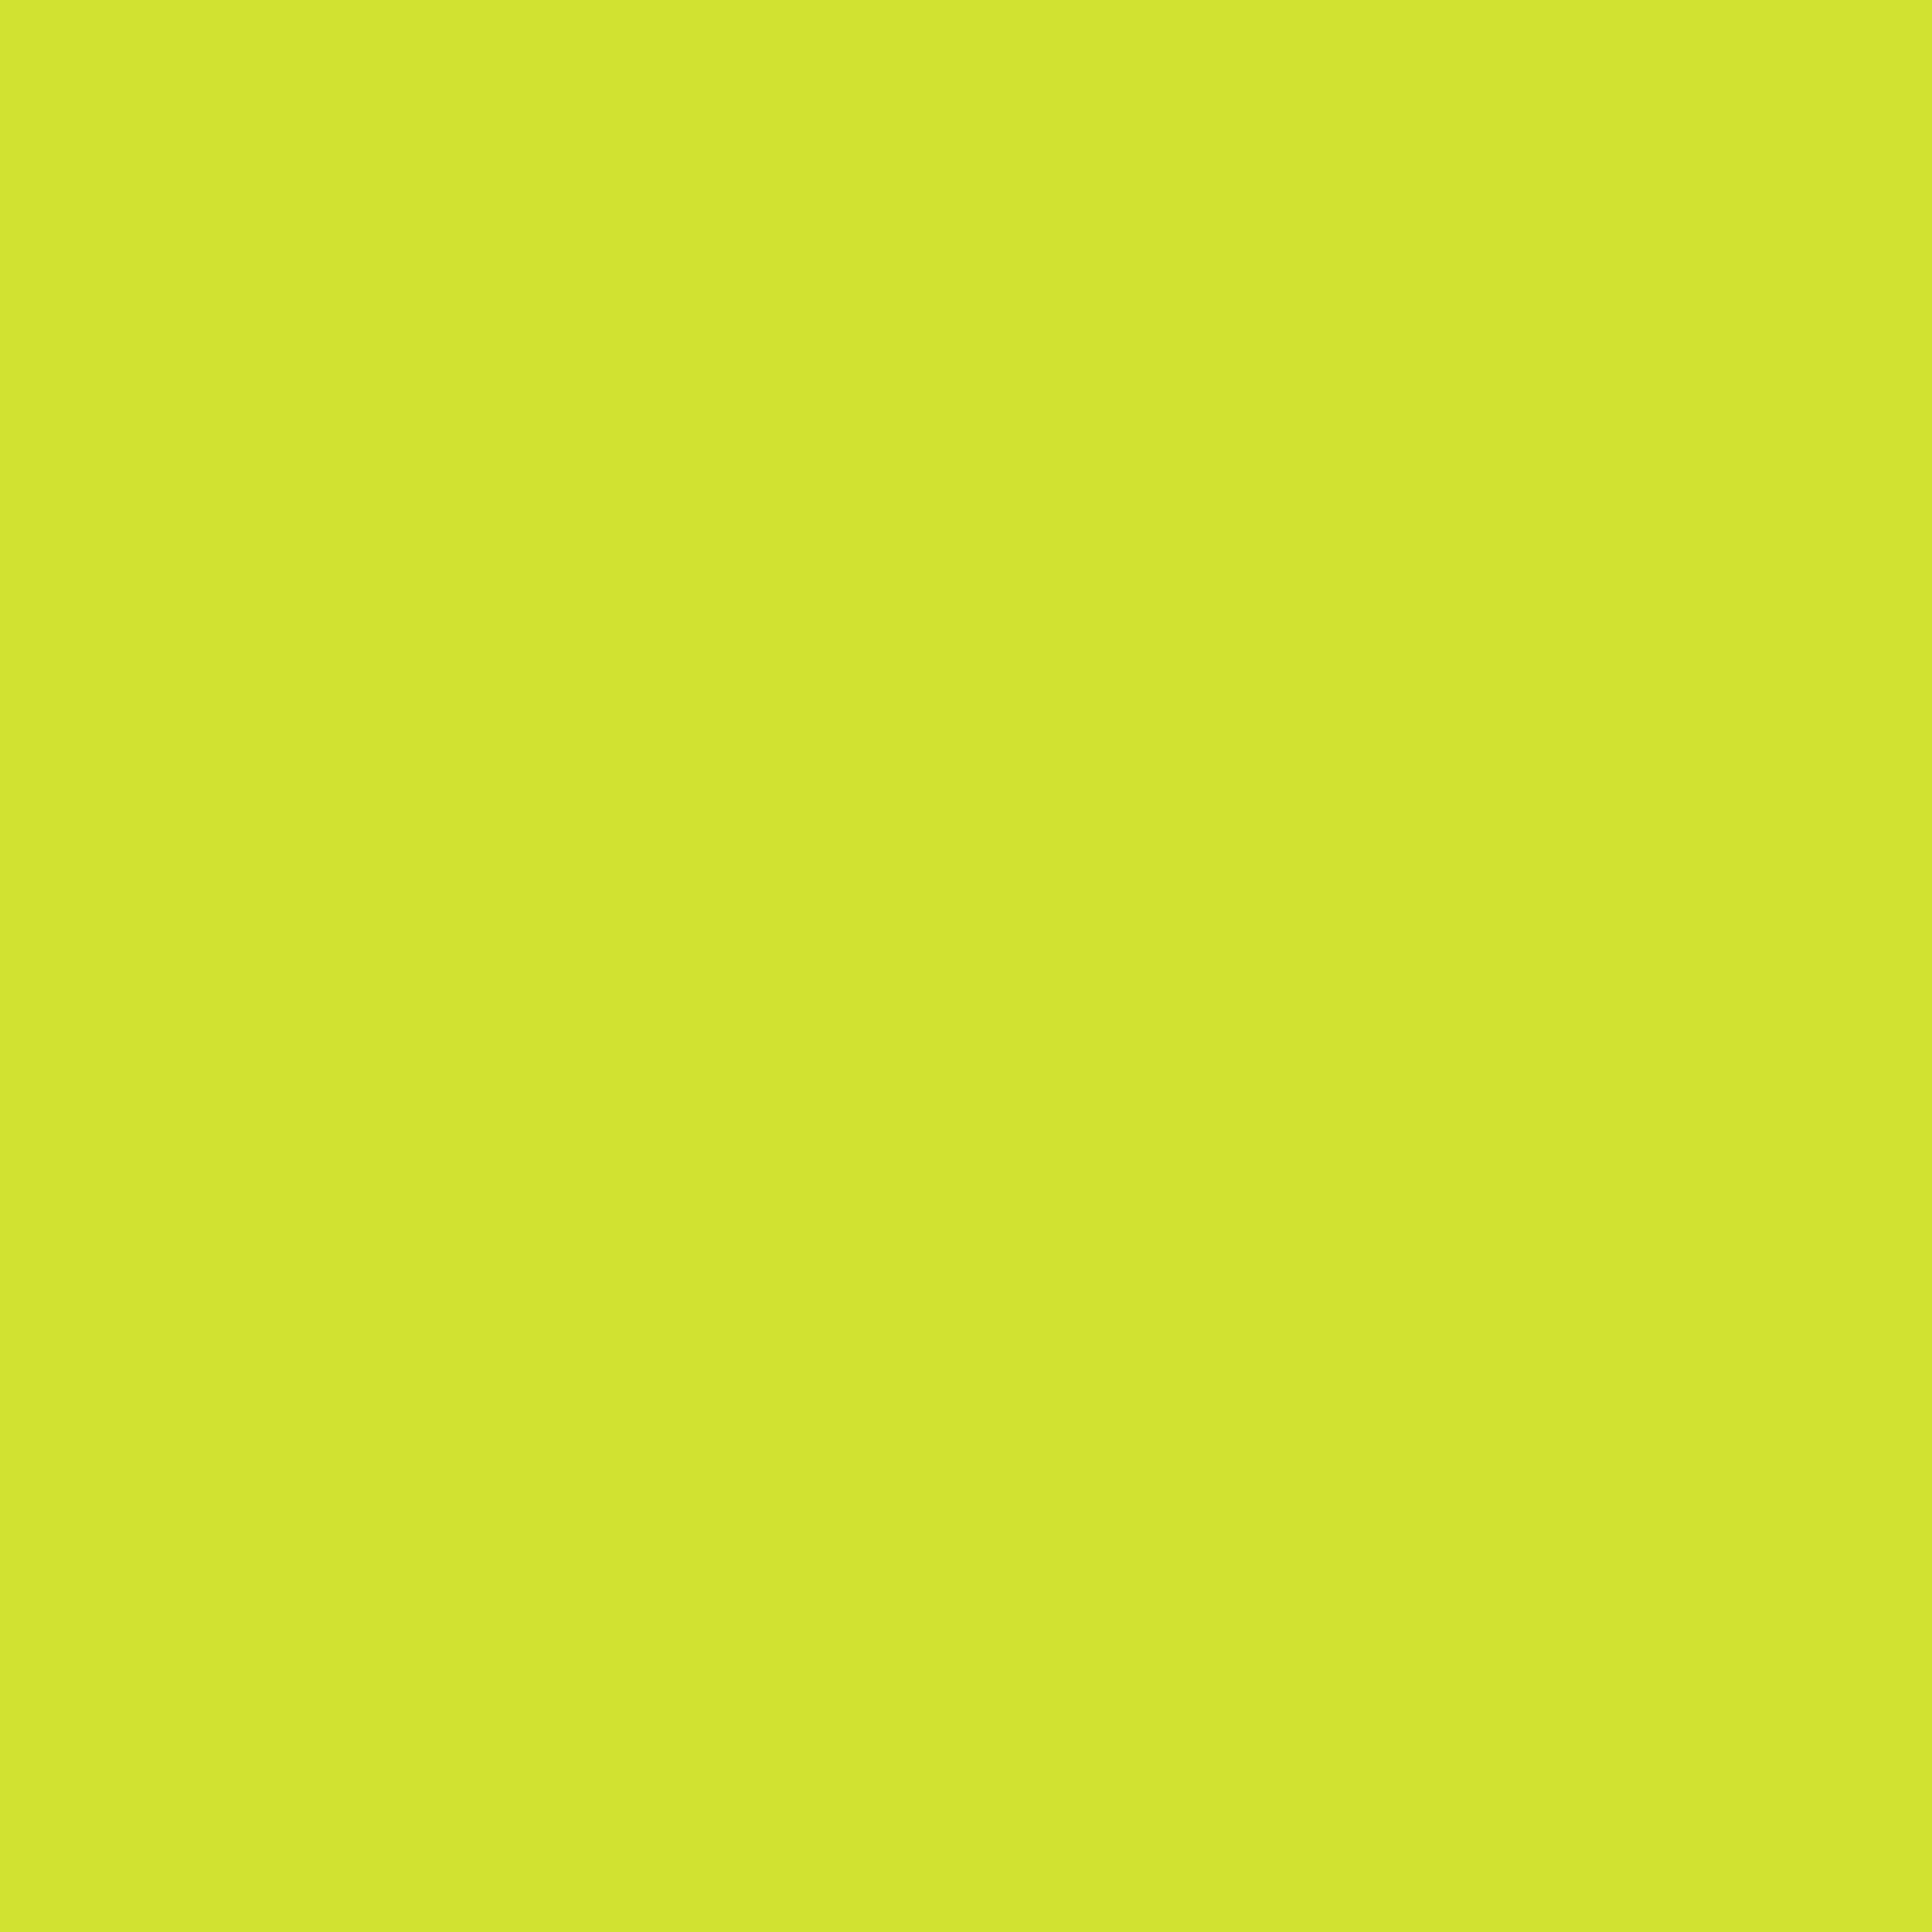 3600x3600 Pear Solid Color Background